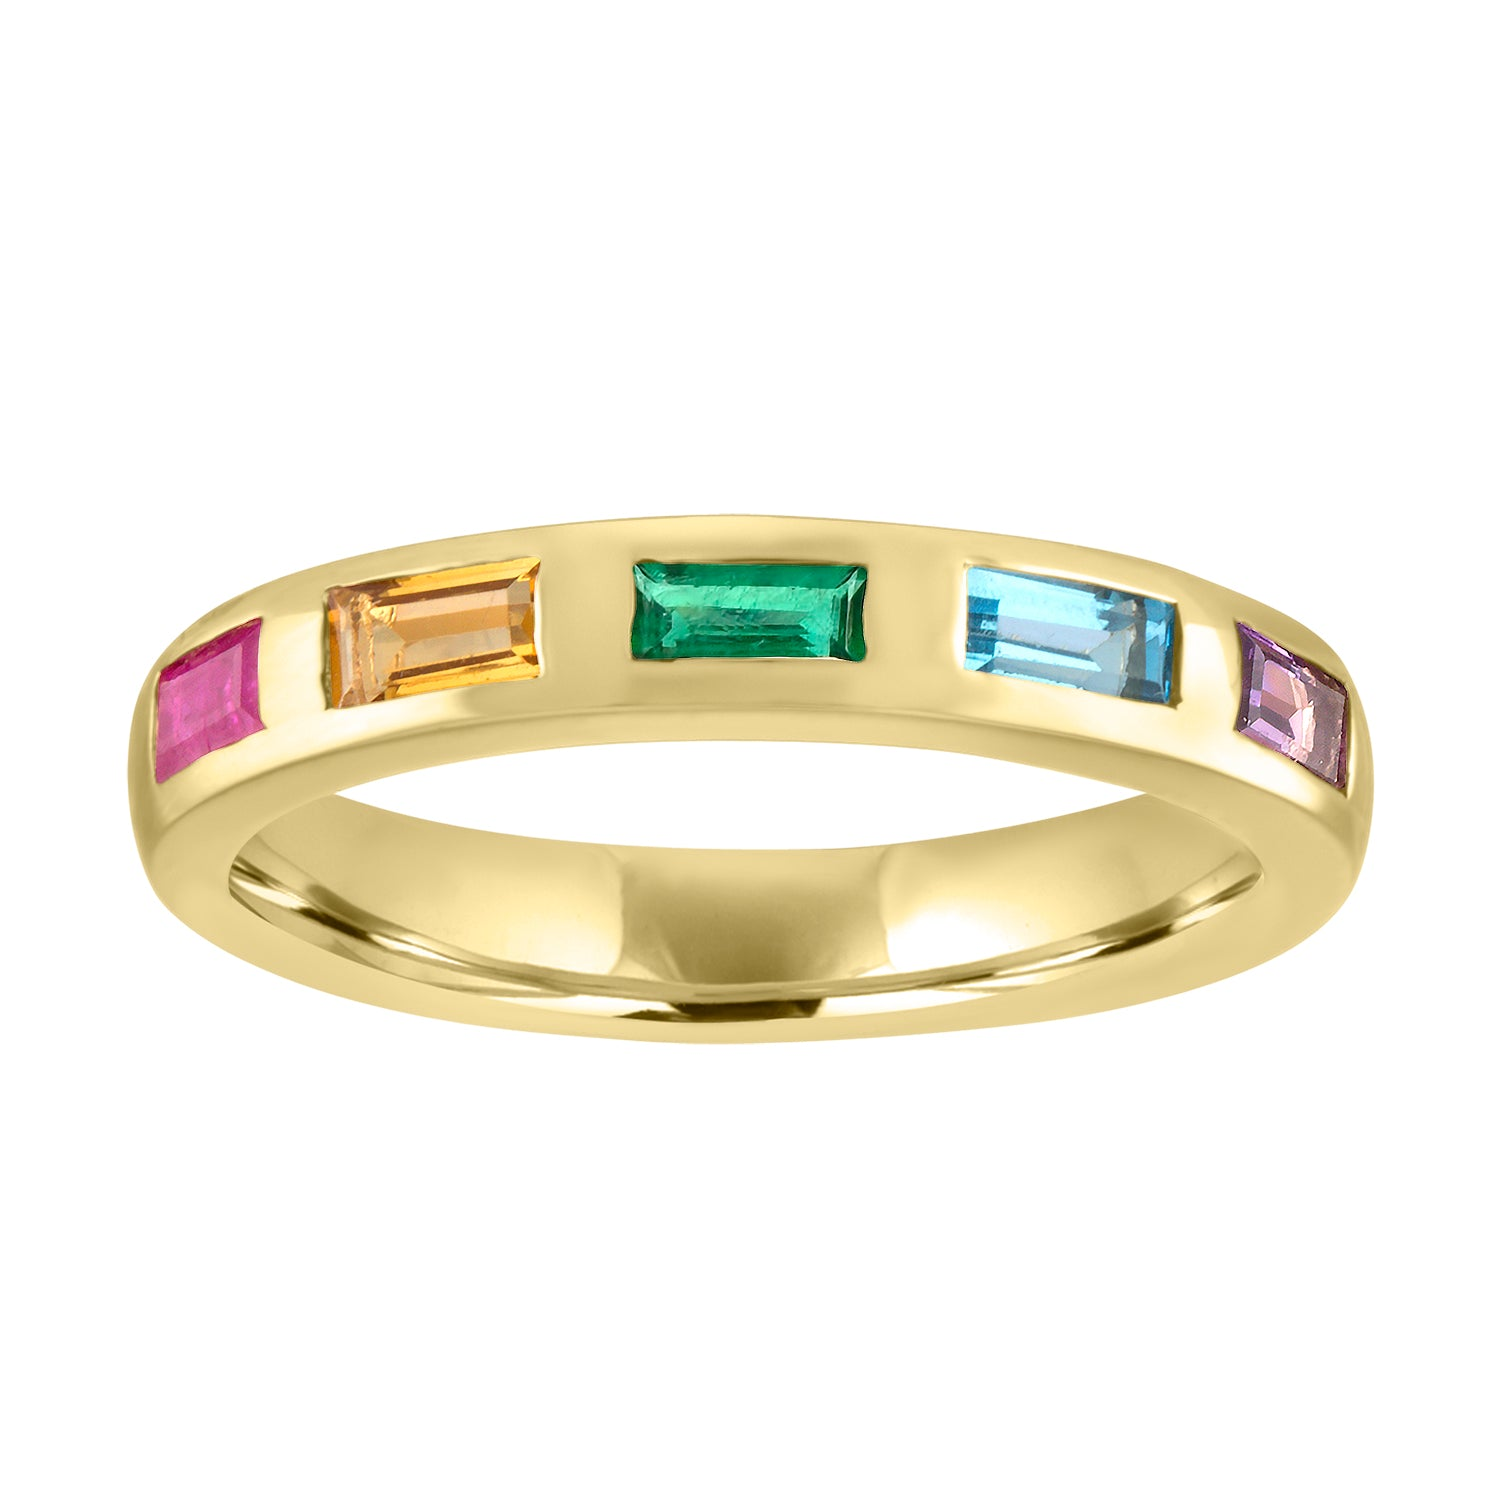 Thin band with 5 rainbow baguettes